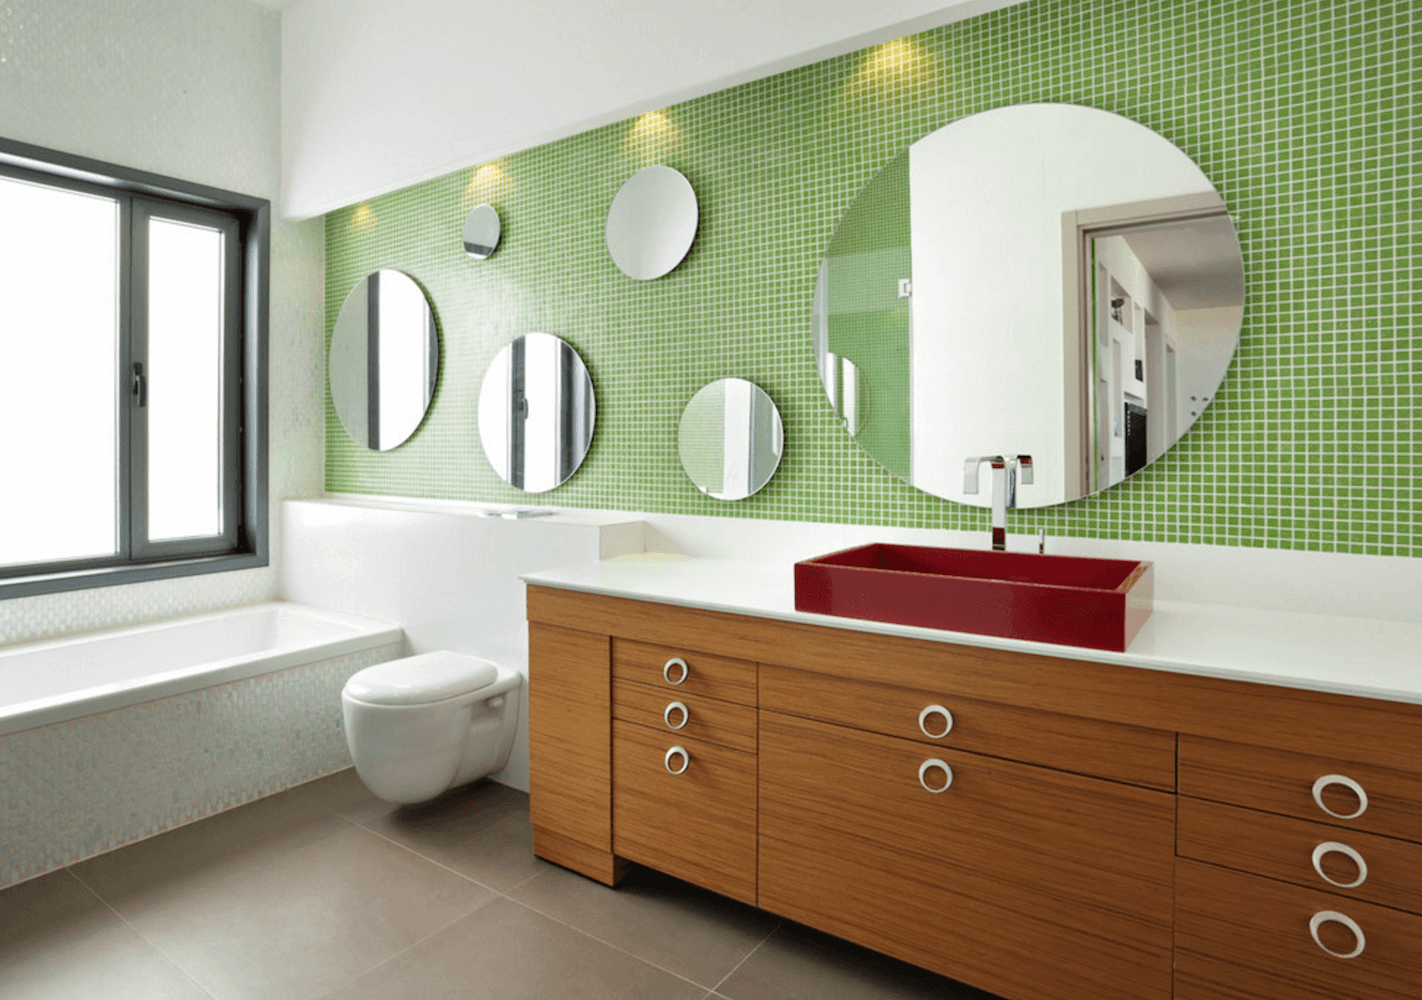 38 Bathroom Mirror Ideas To Reflect Your Style Freshome intended for dimensions 1422 X 1000